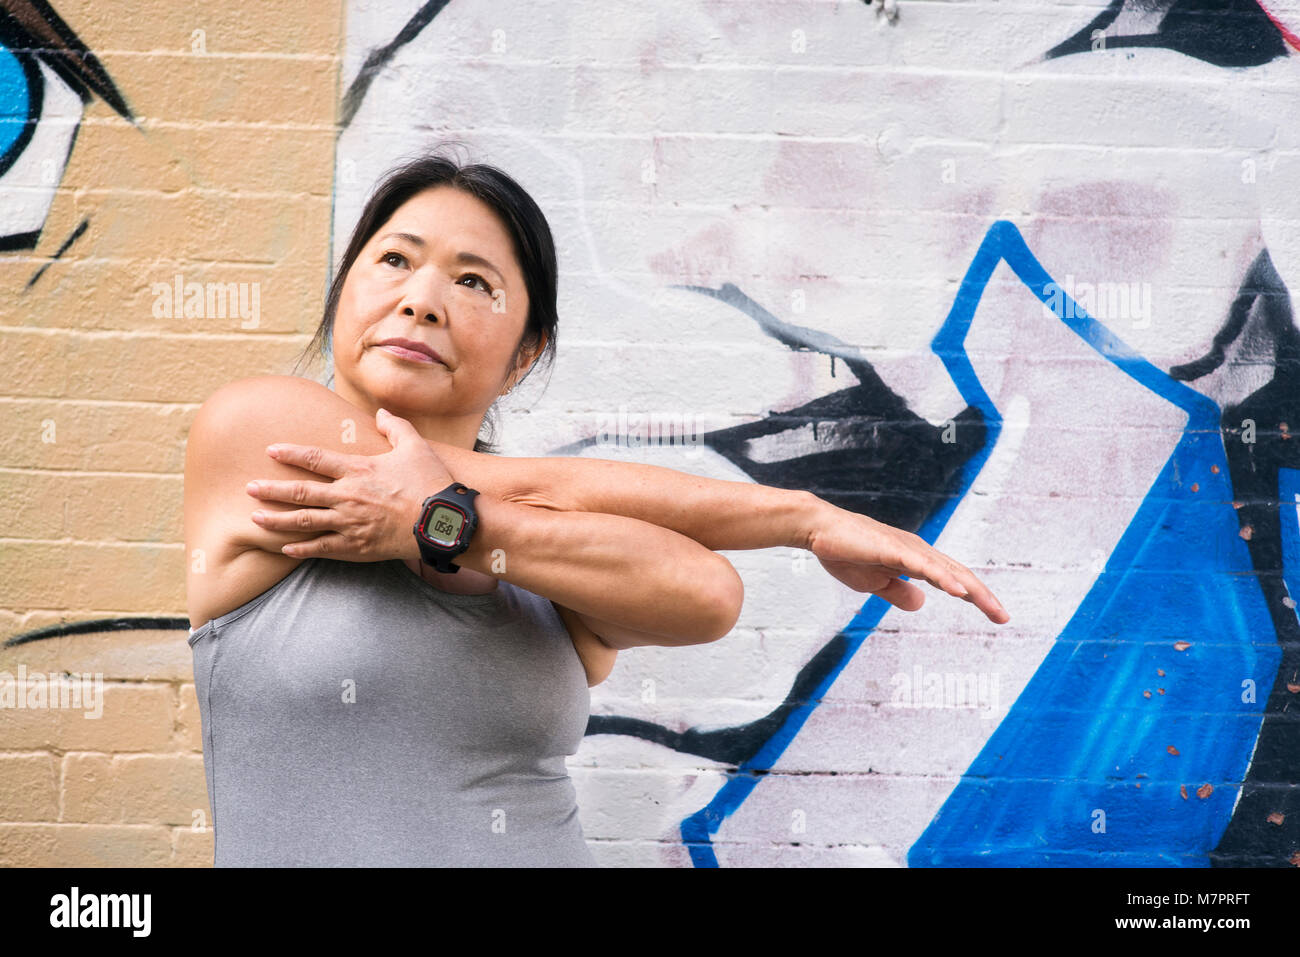 A woman (65) wearing a fitness device stretching out in preparation for a workout. - Stock Image